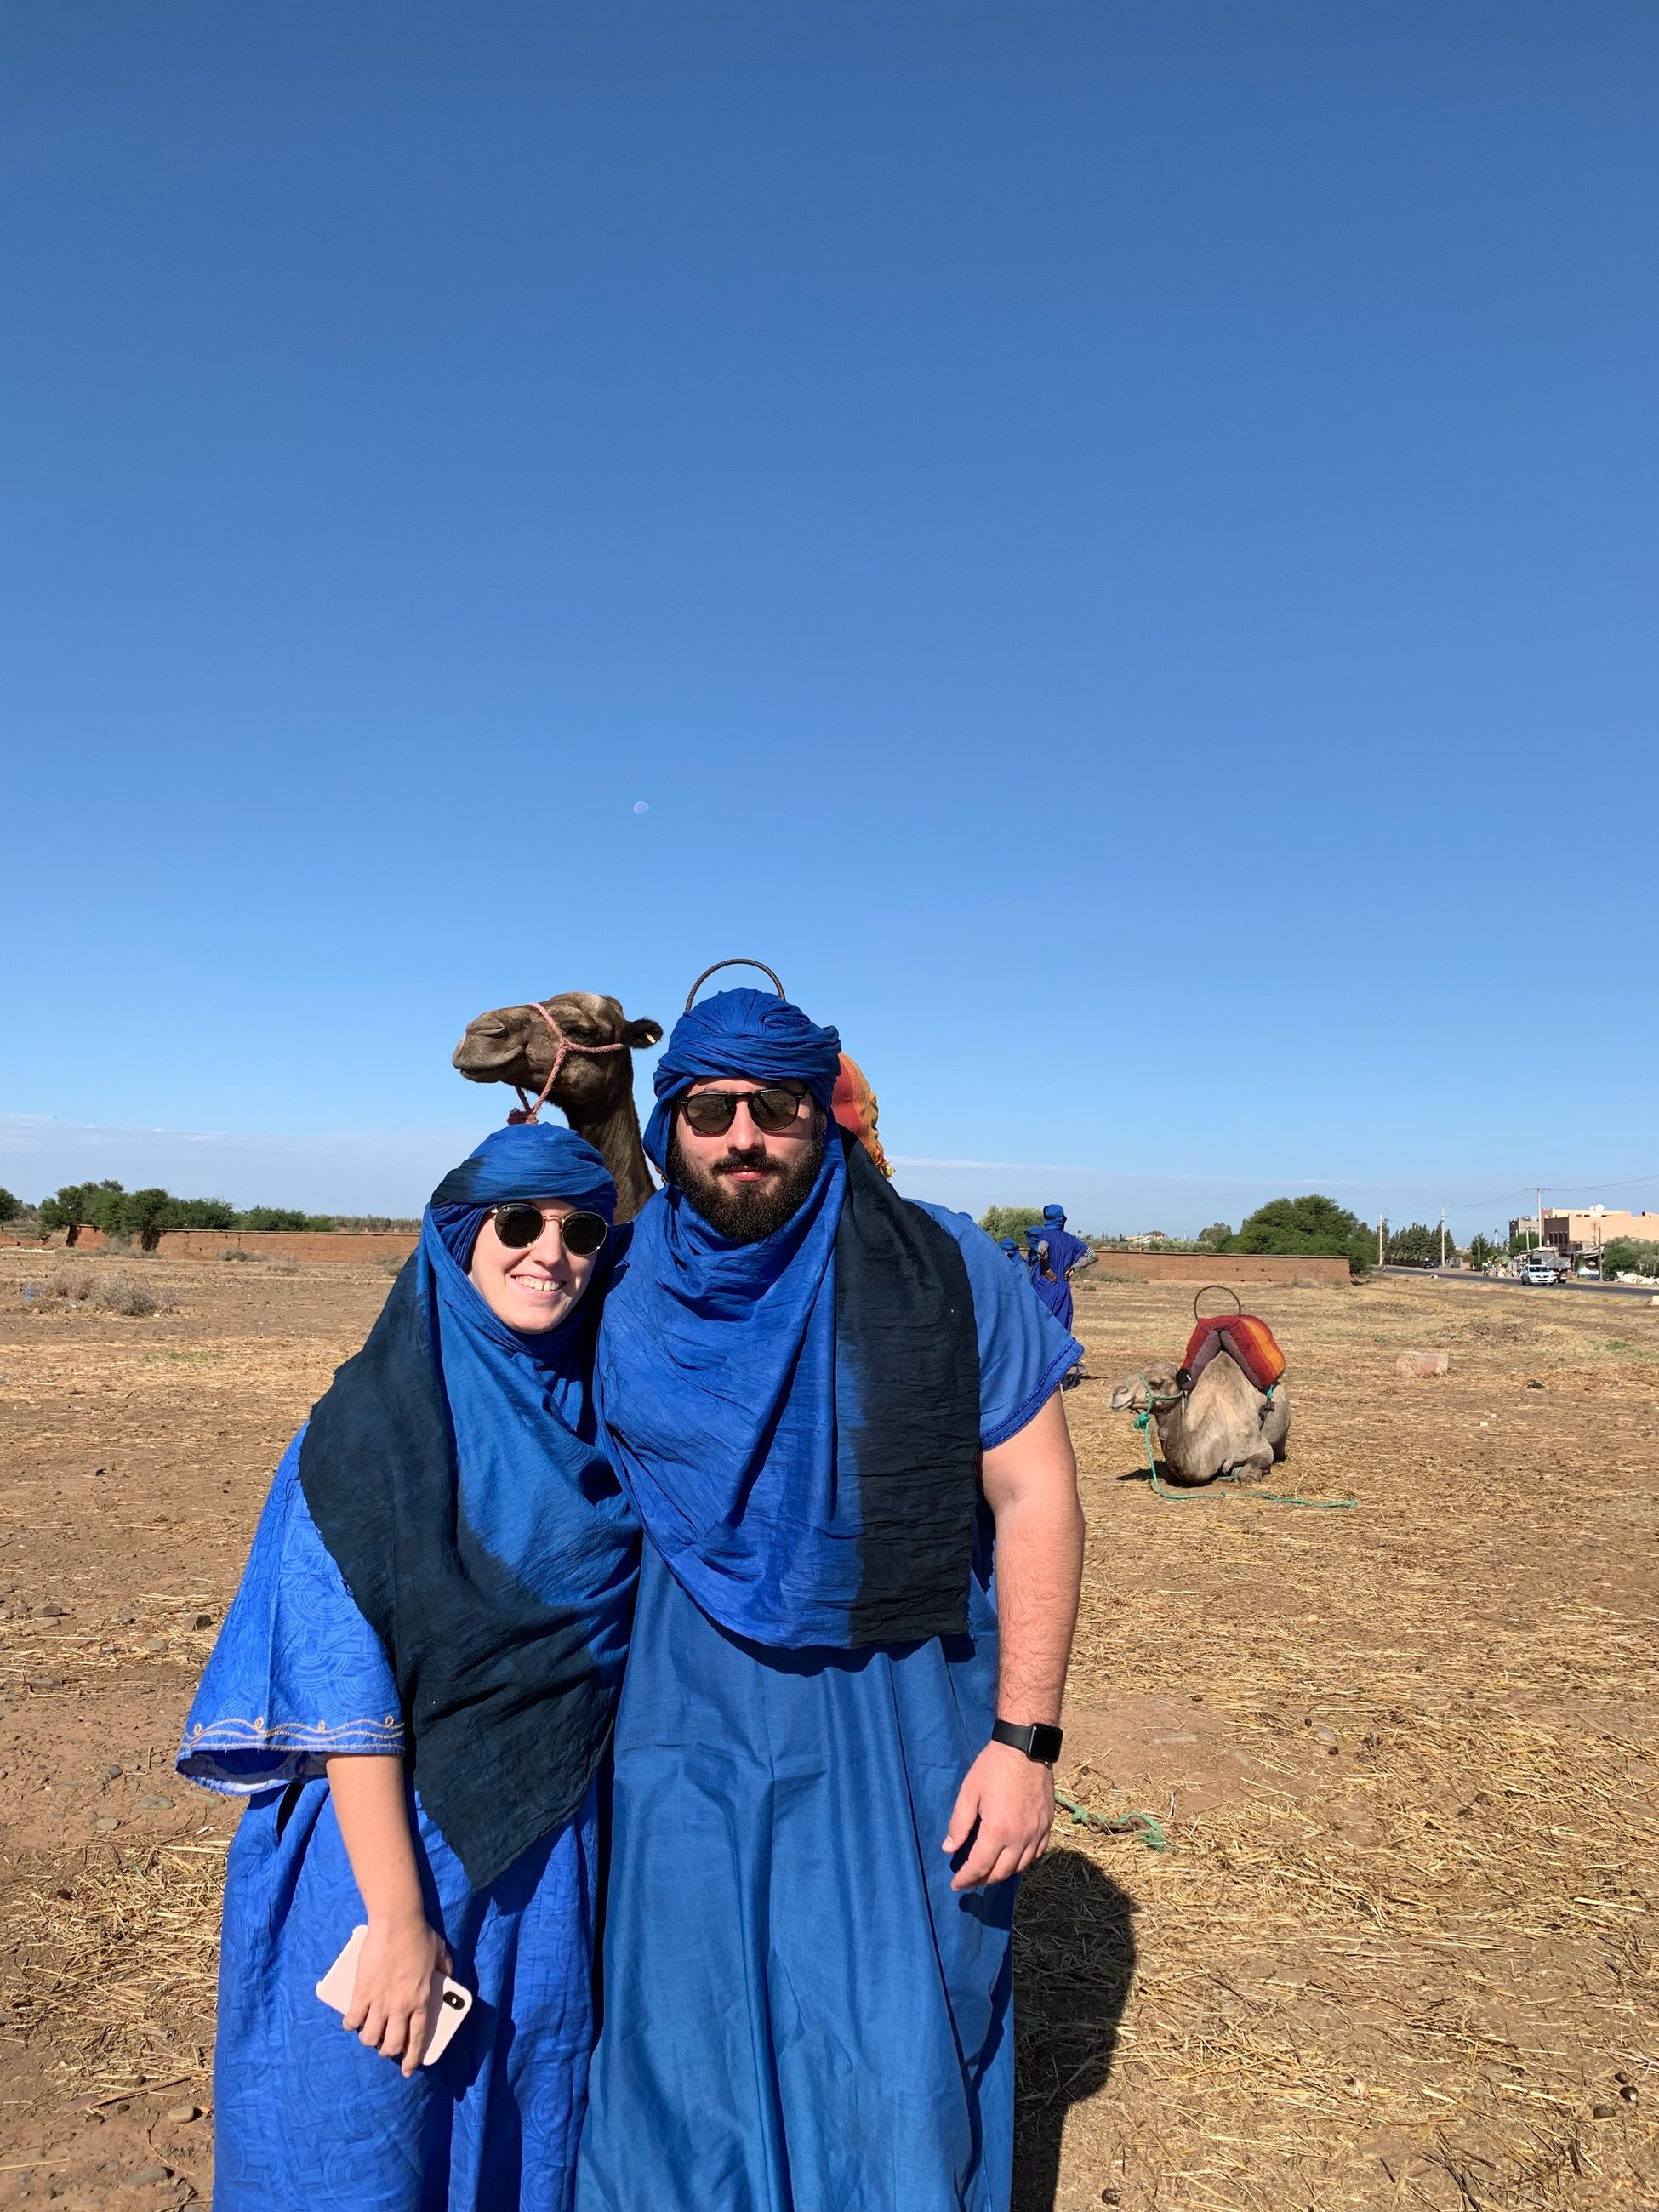 Portrait of man and woman in traditional clothes while standing in desert